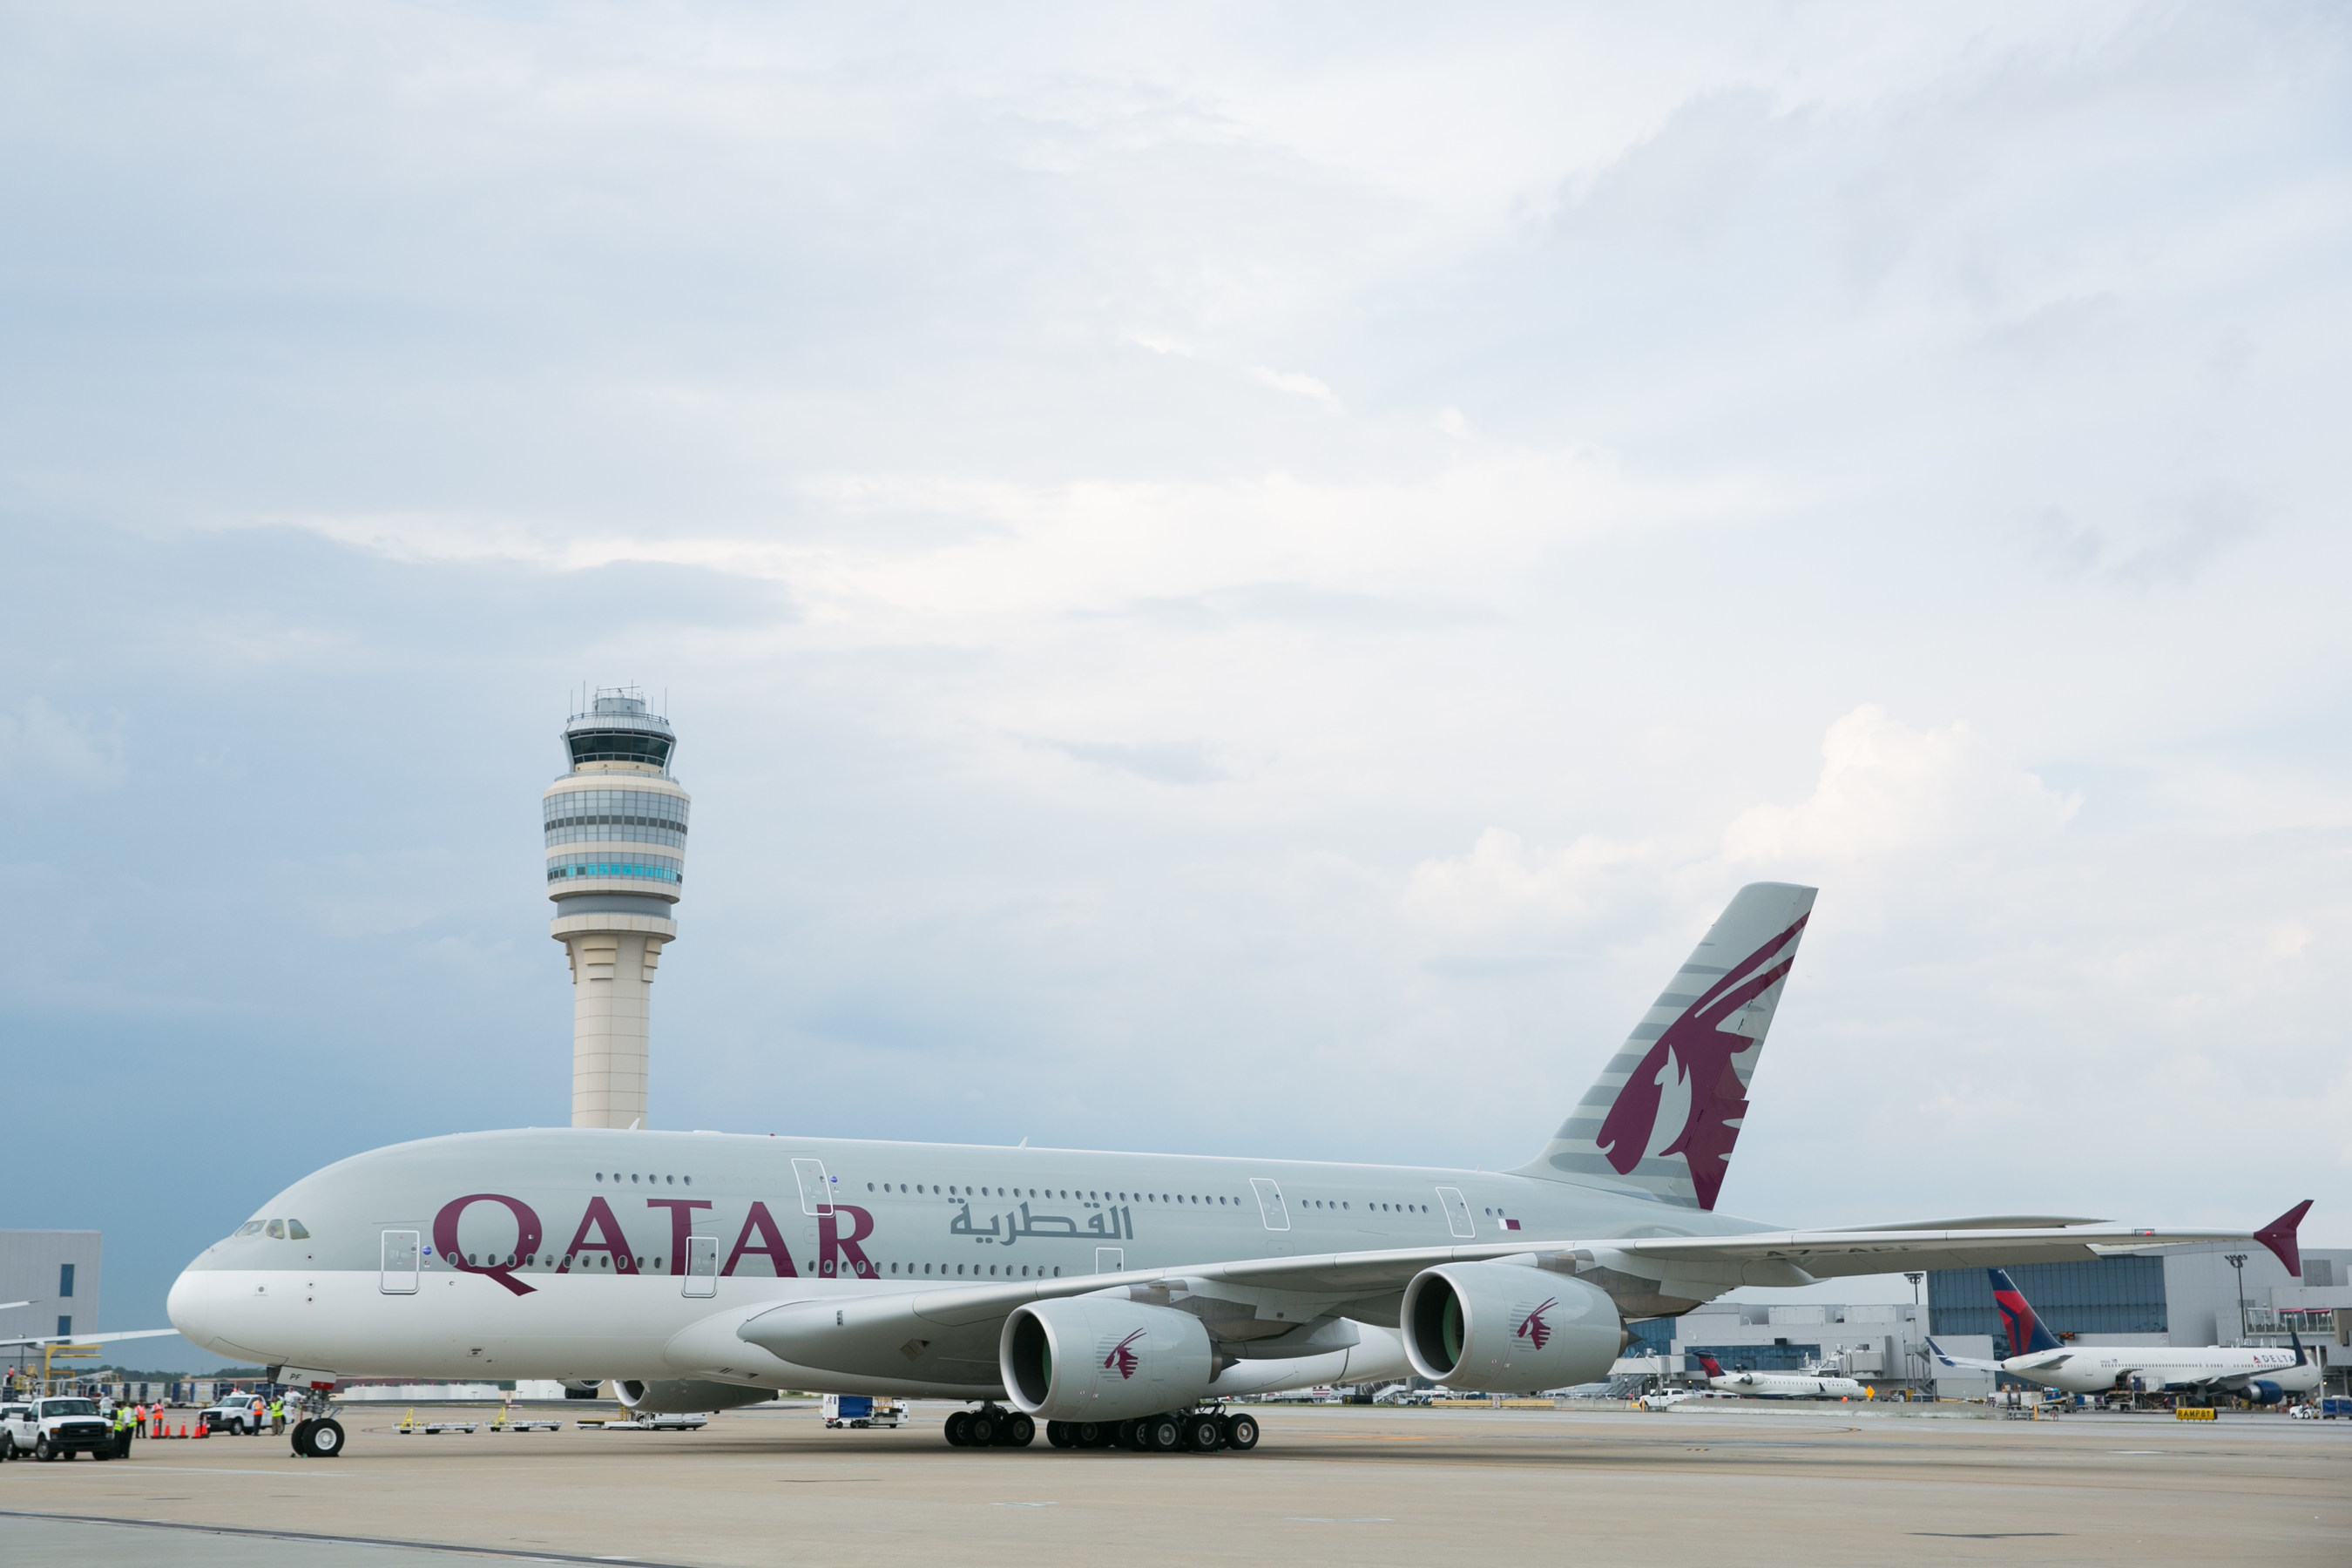 Qatar Airways A380 inaugural flight #756 taxis to pick up new Atlanta passengers bound for Doha and 41 countries beyond